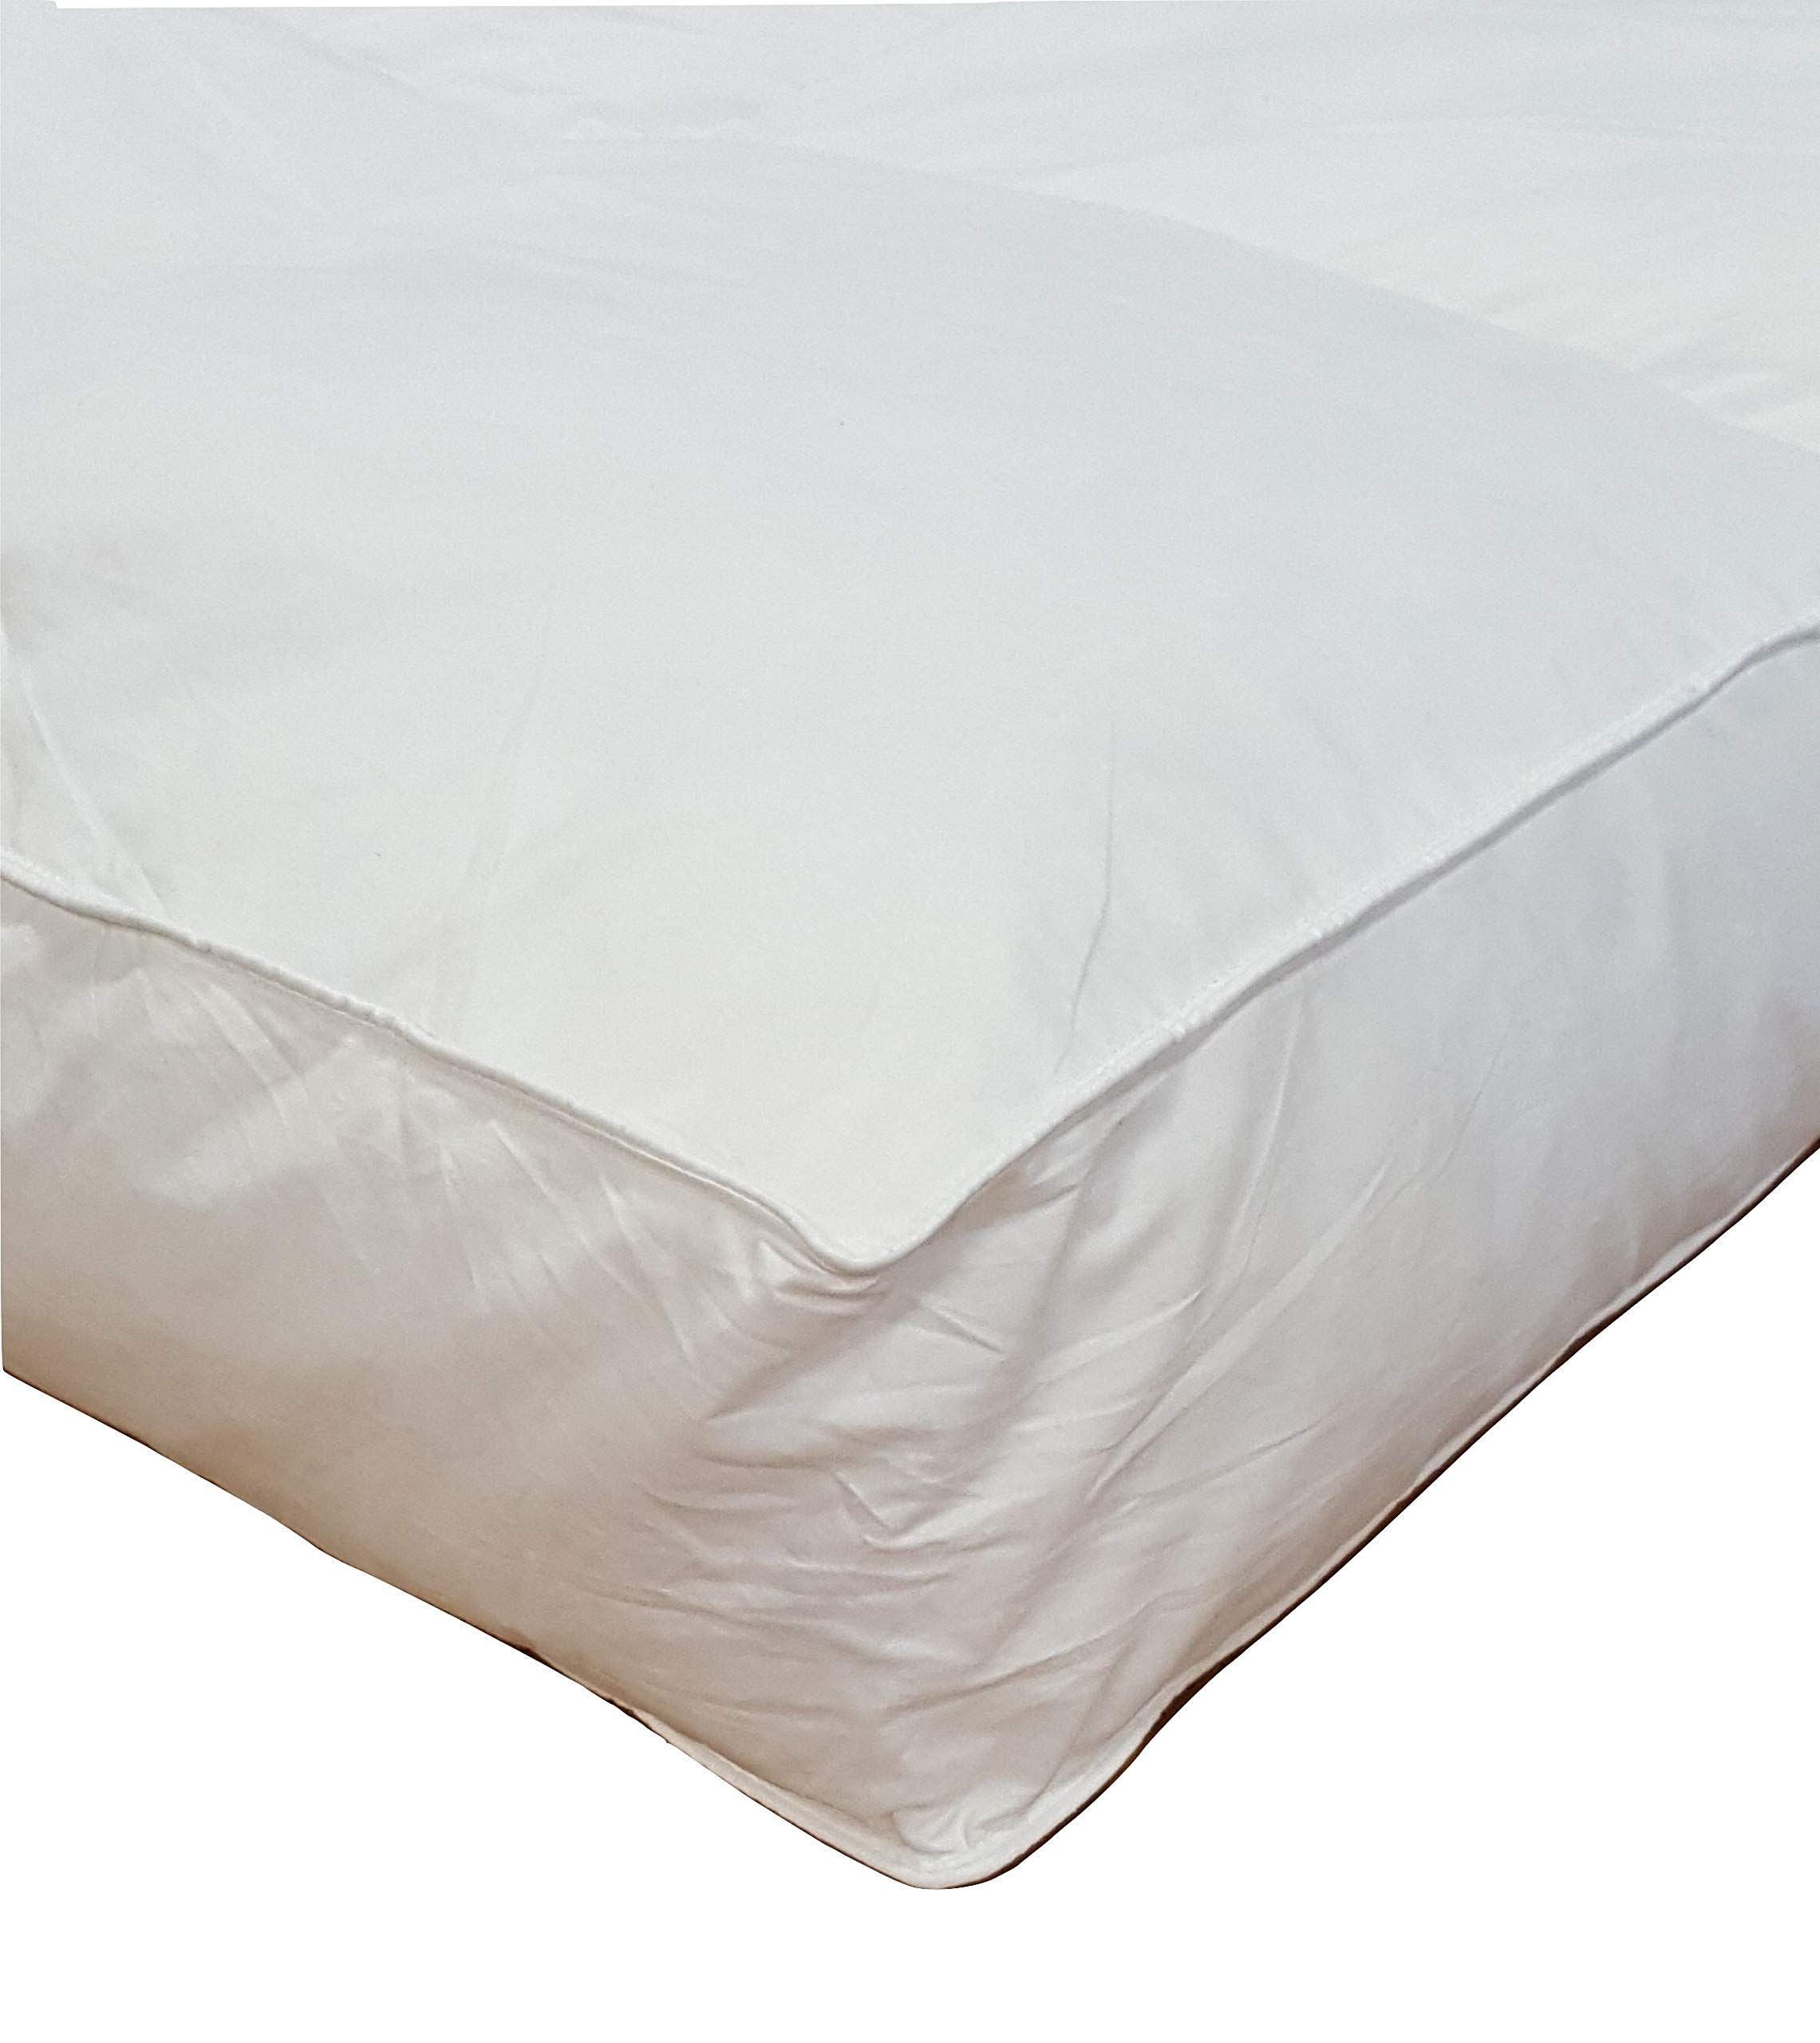 4'' Full Goose Down Mattress Topper Featherbed / Feather Bed Baffled